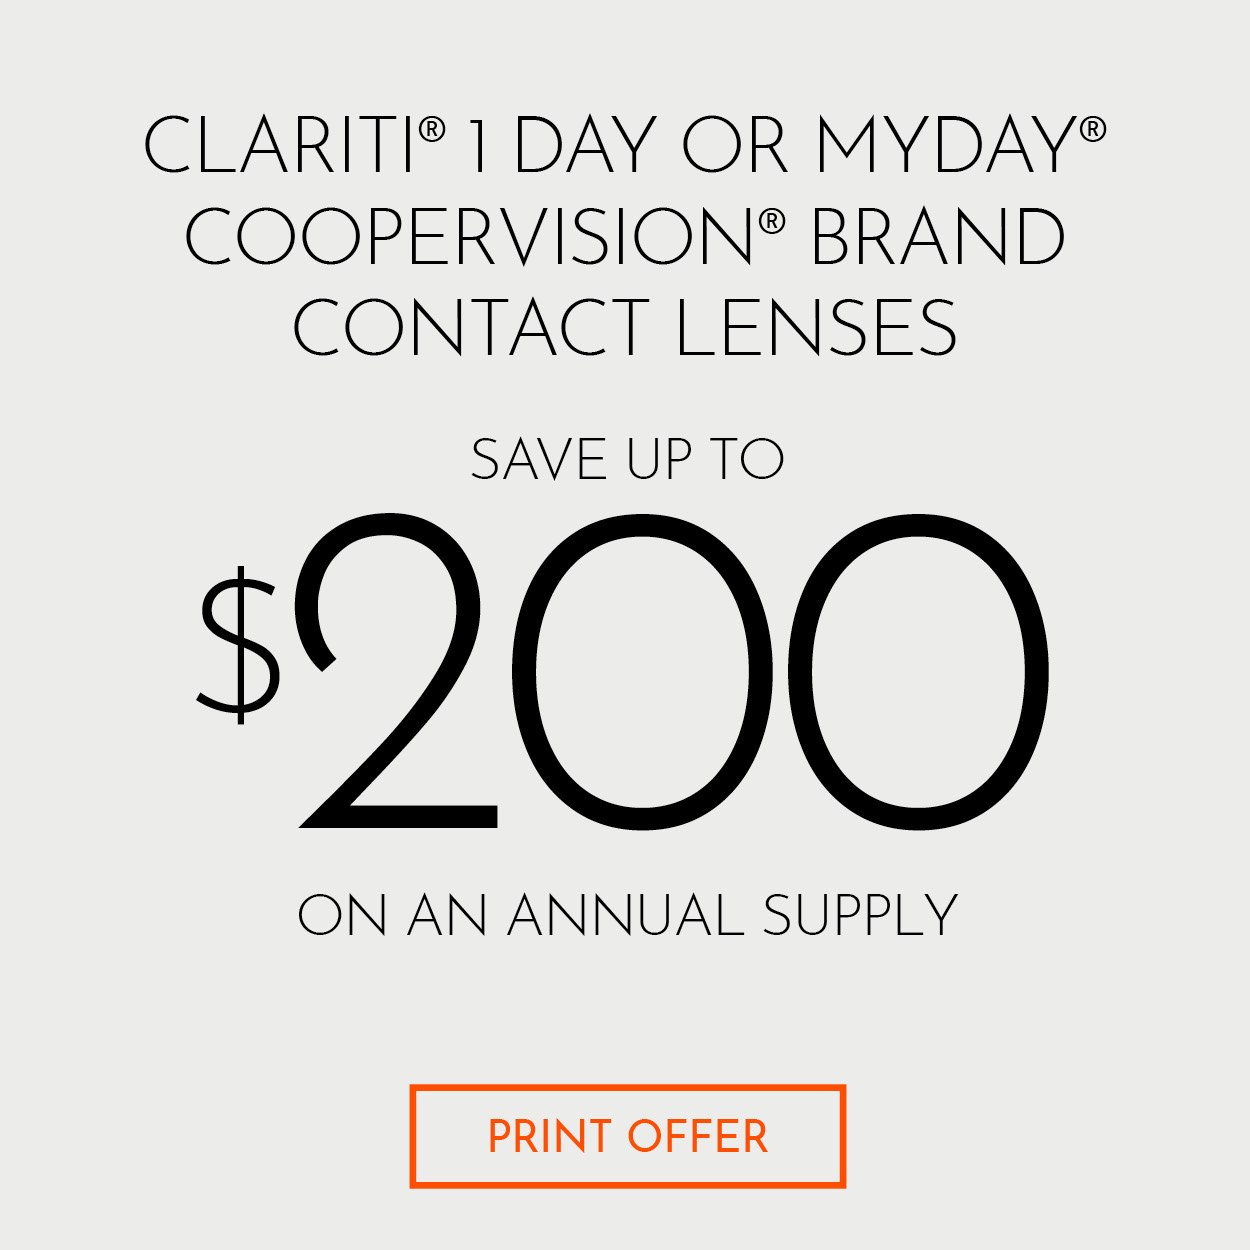 Coopervision Clariti 1 Day MyDay Contact Lenses $200 Rebate